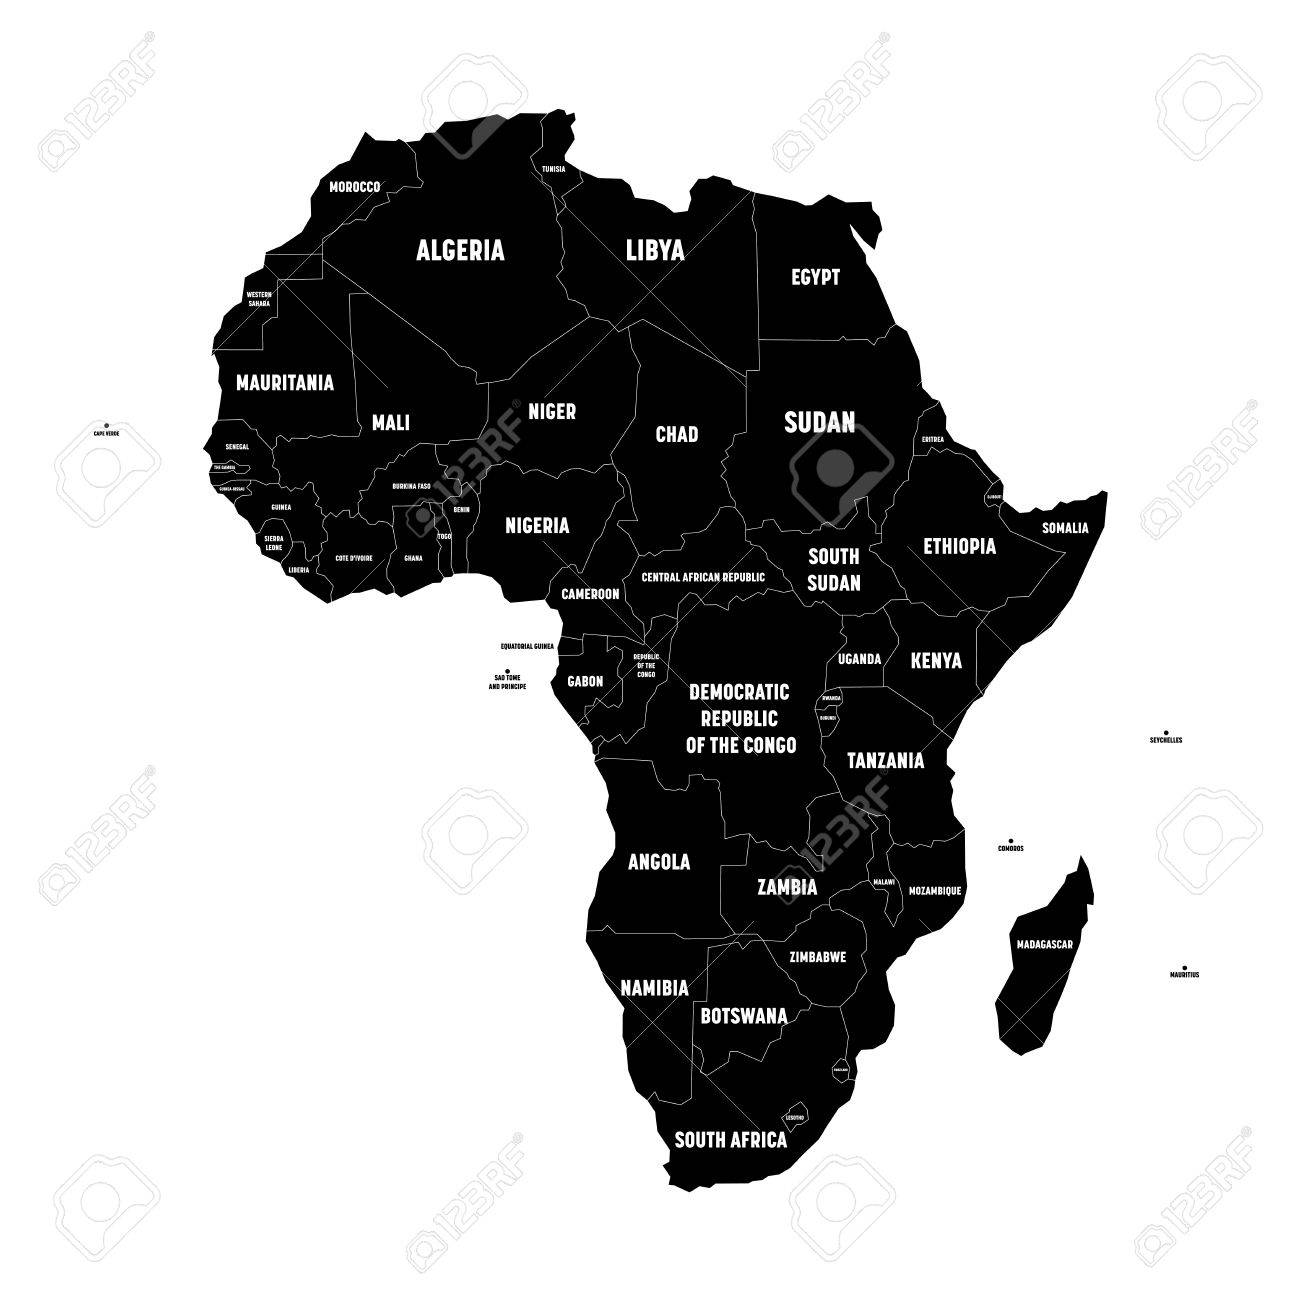 Simple Flat Black Map Of Africa Continent With National Borders